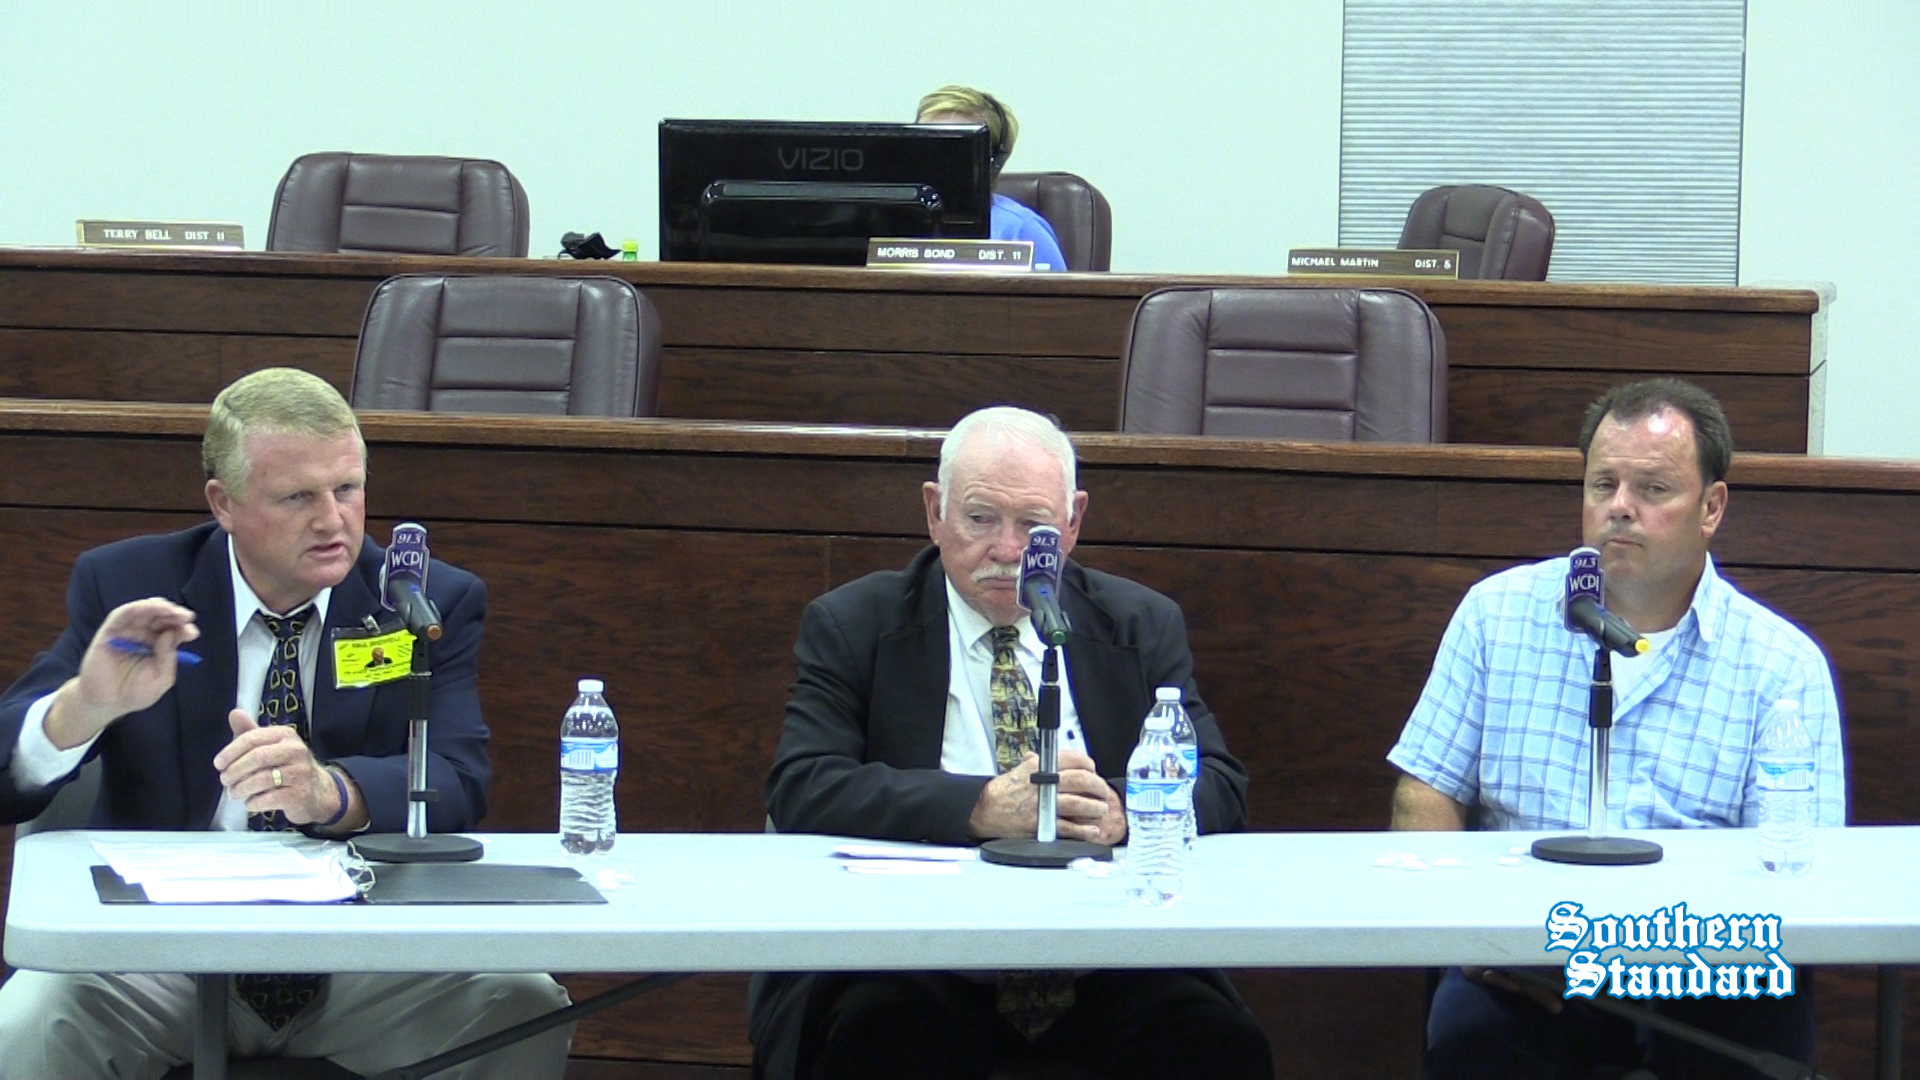 VIDEO: Candidates for the 43rd District State House Forum